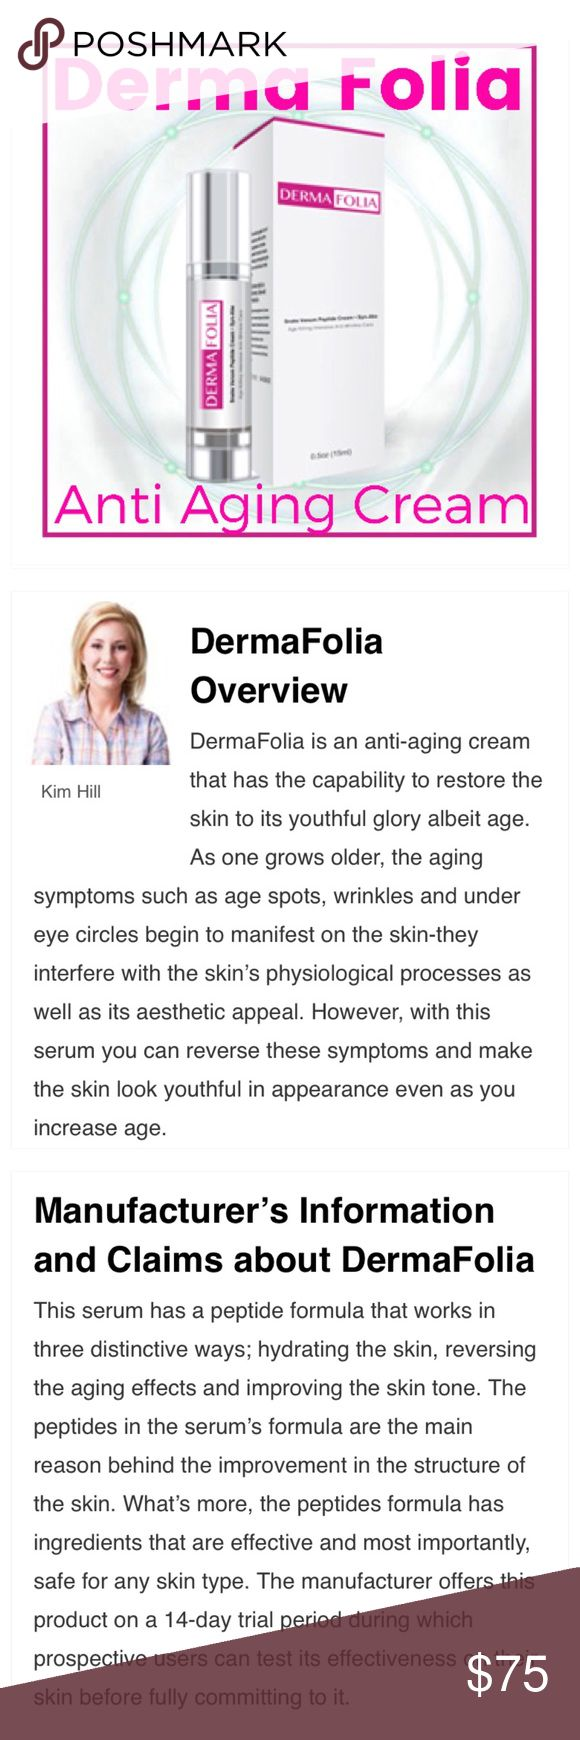 Derma Folia Anti Aging Cream w/Snake Venom Derma Folia anti aging cream with snake venom will restore skin, wrinkles, dark spots, circles under eyes. Brand new in package and paid 90 for it. Never used. Read info from their site above. Reduced from 60!!! 🤣 Derma Folia Makeup